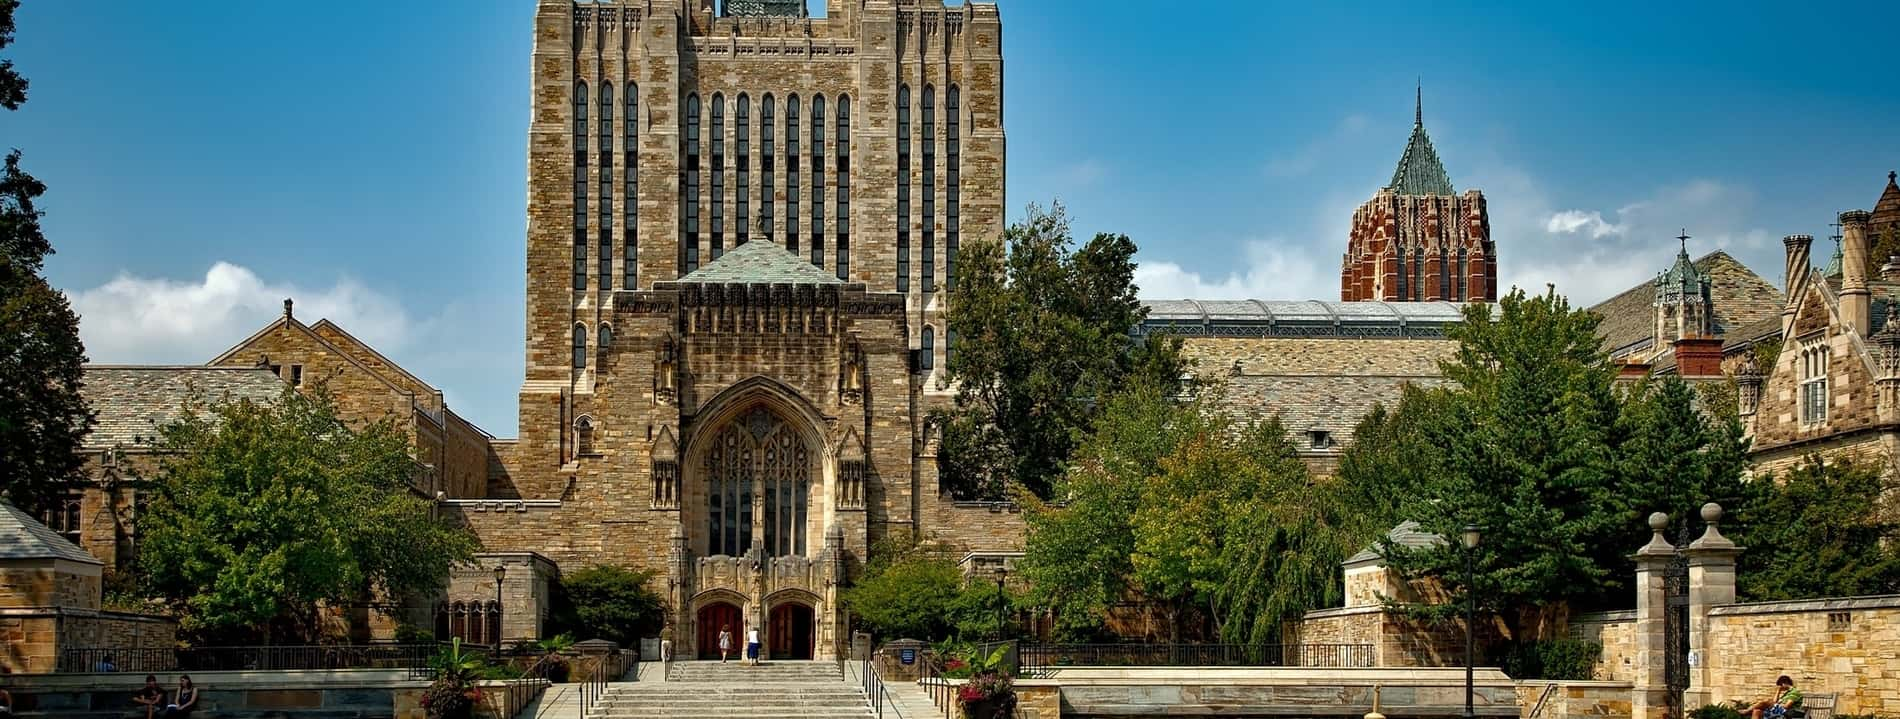 university ivy league schools